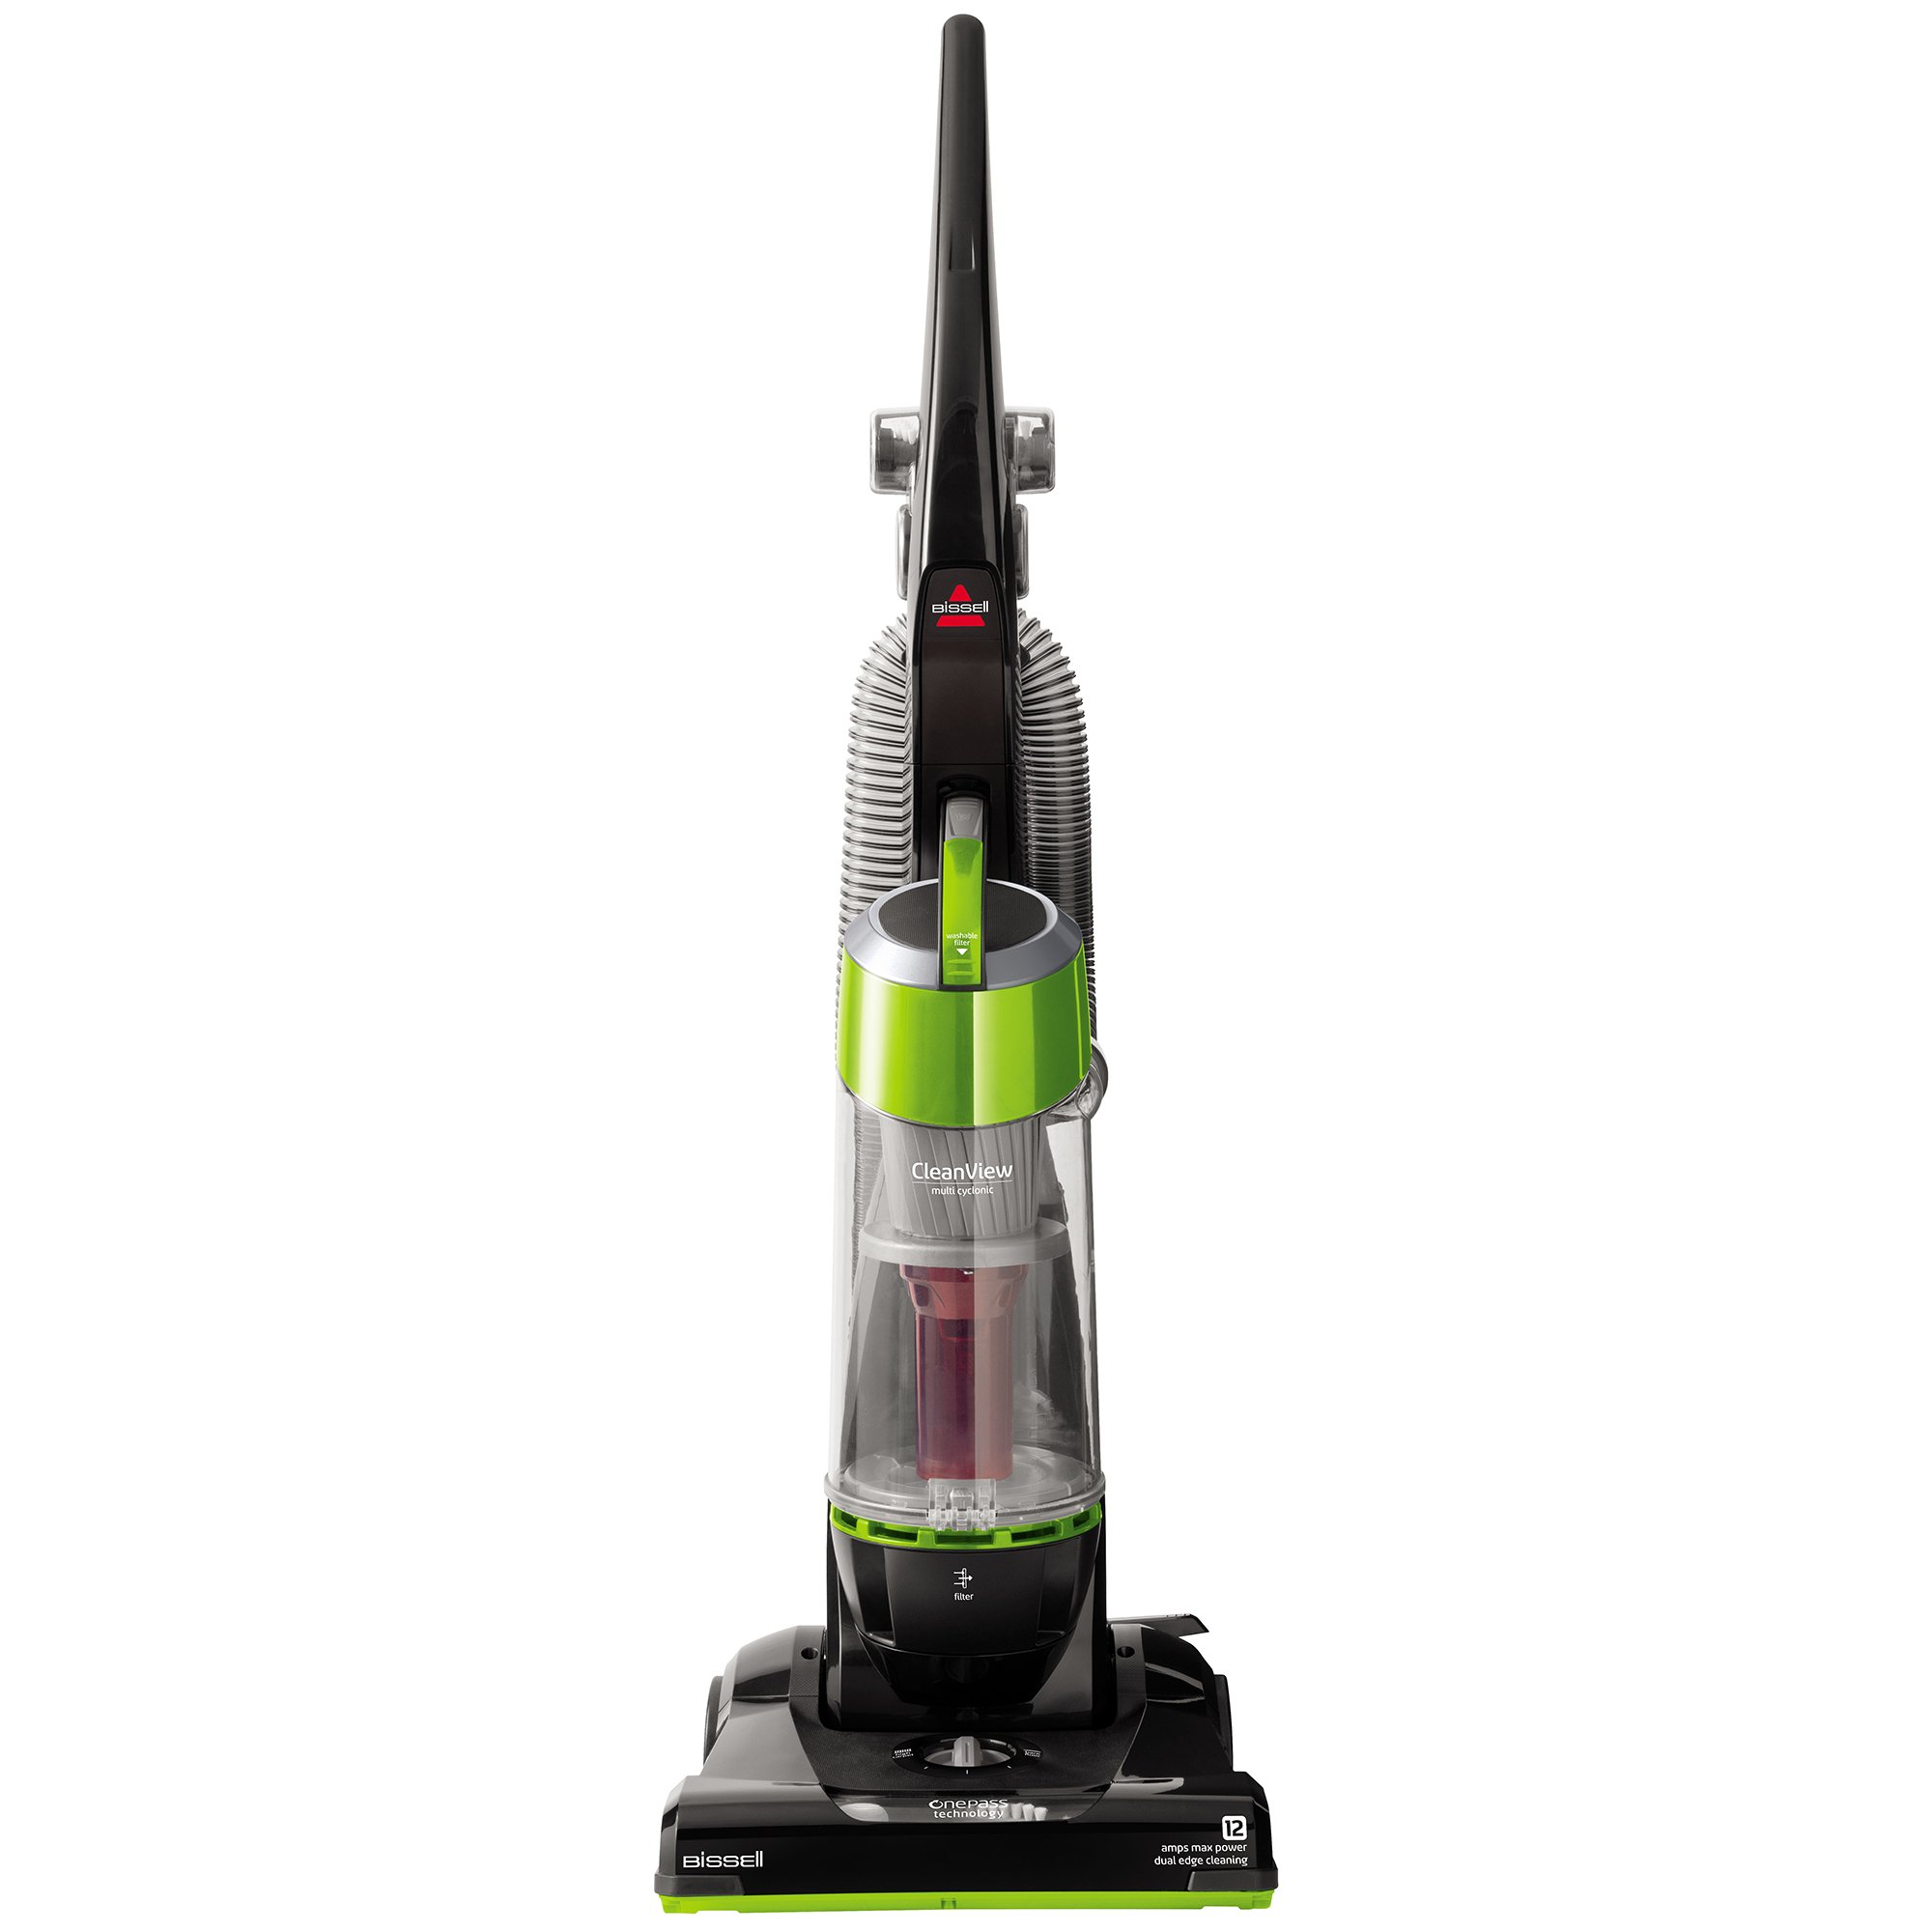 Bissell CleanView Bagless Upright Vacuum, Green, 95957 by Bissell